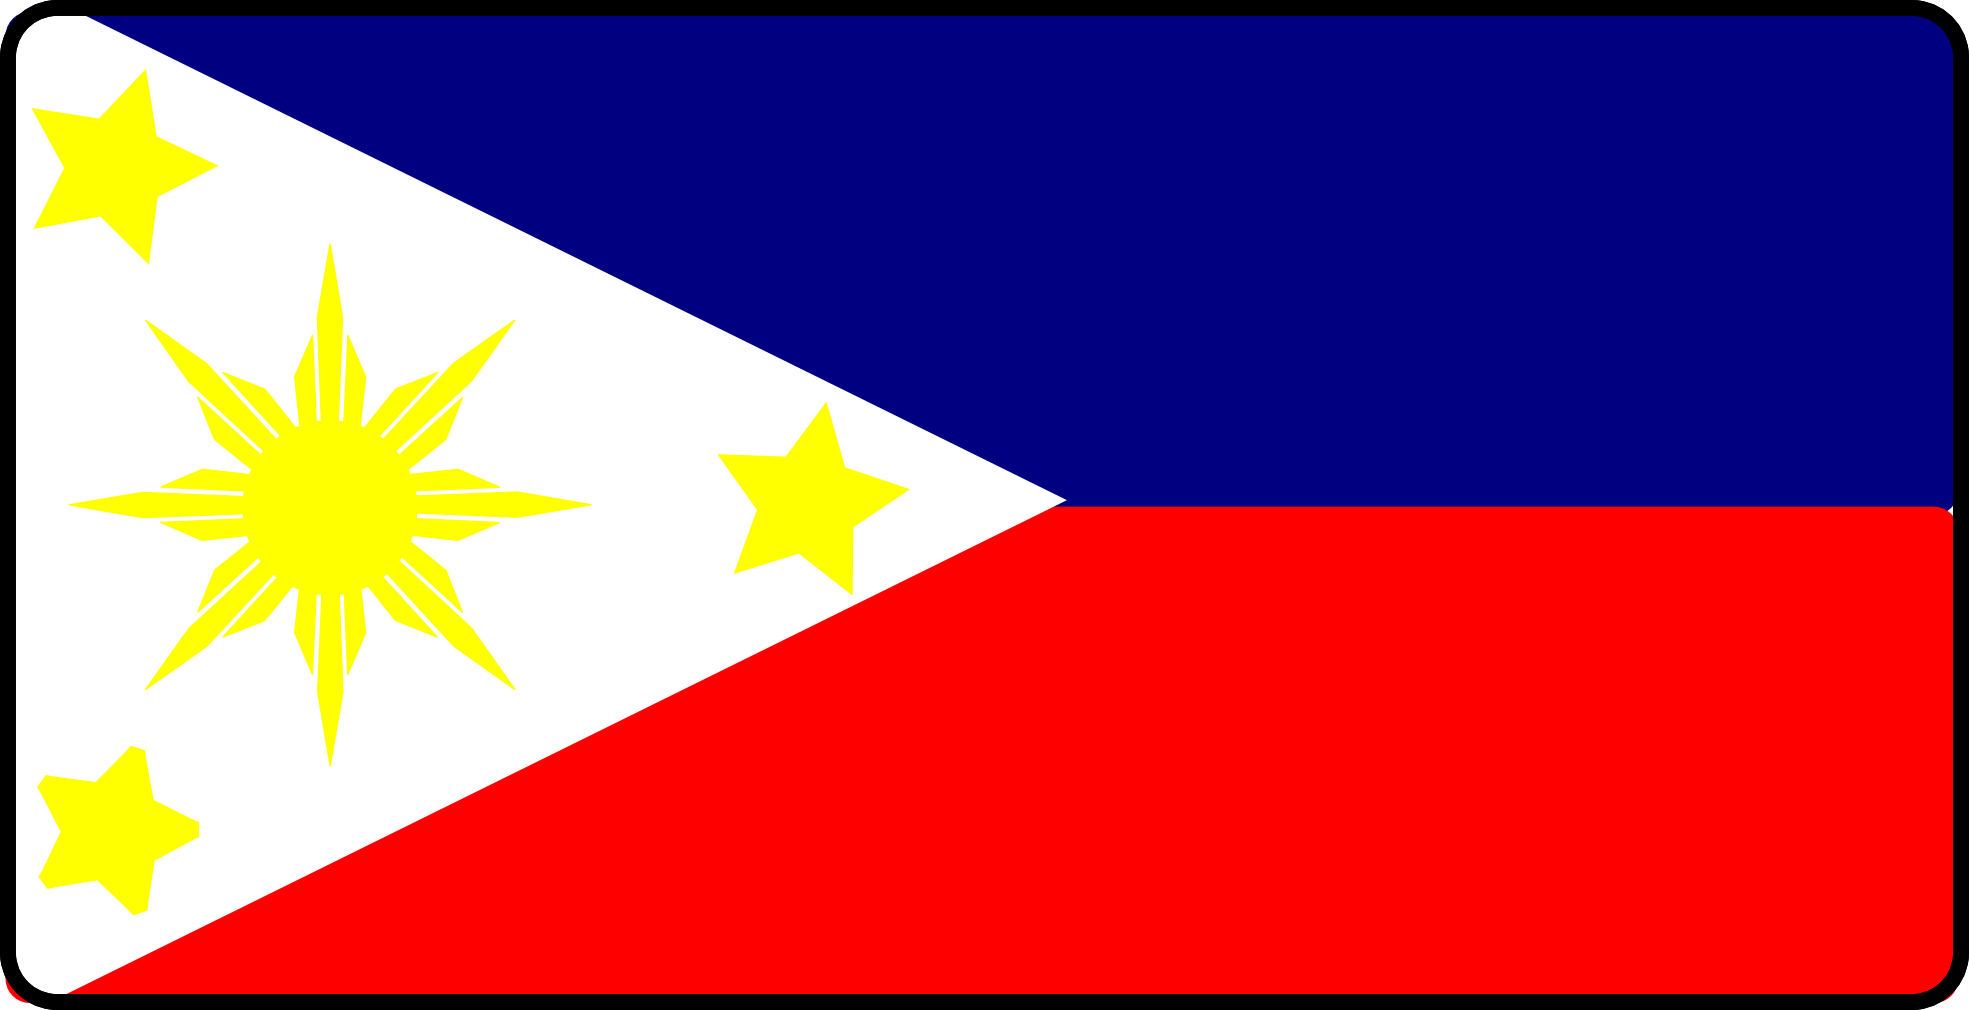 Phillipines clipart #2, Download drawings